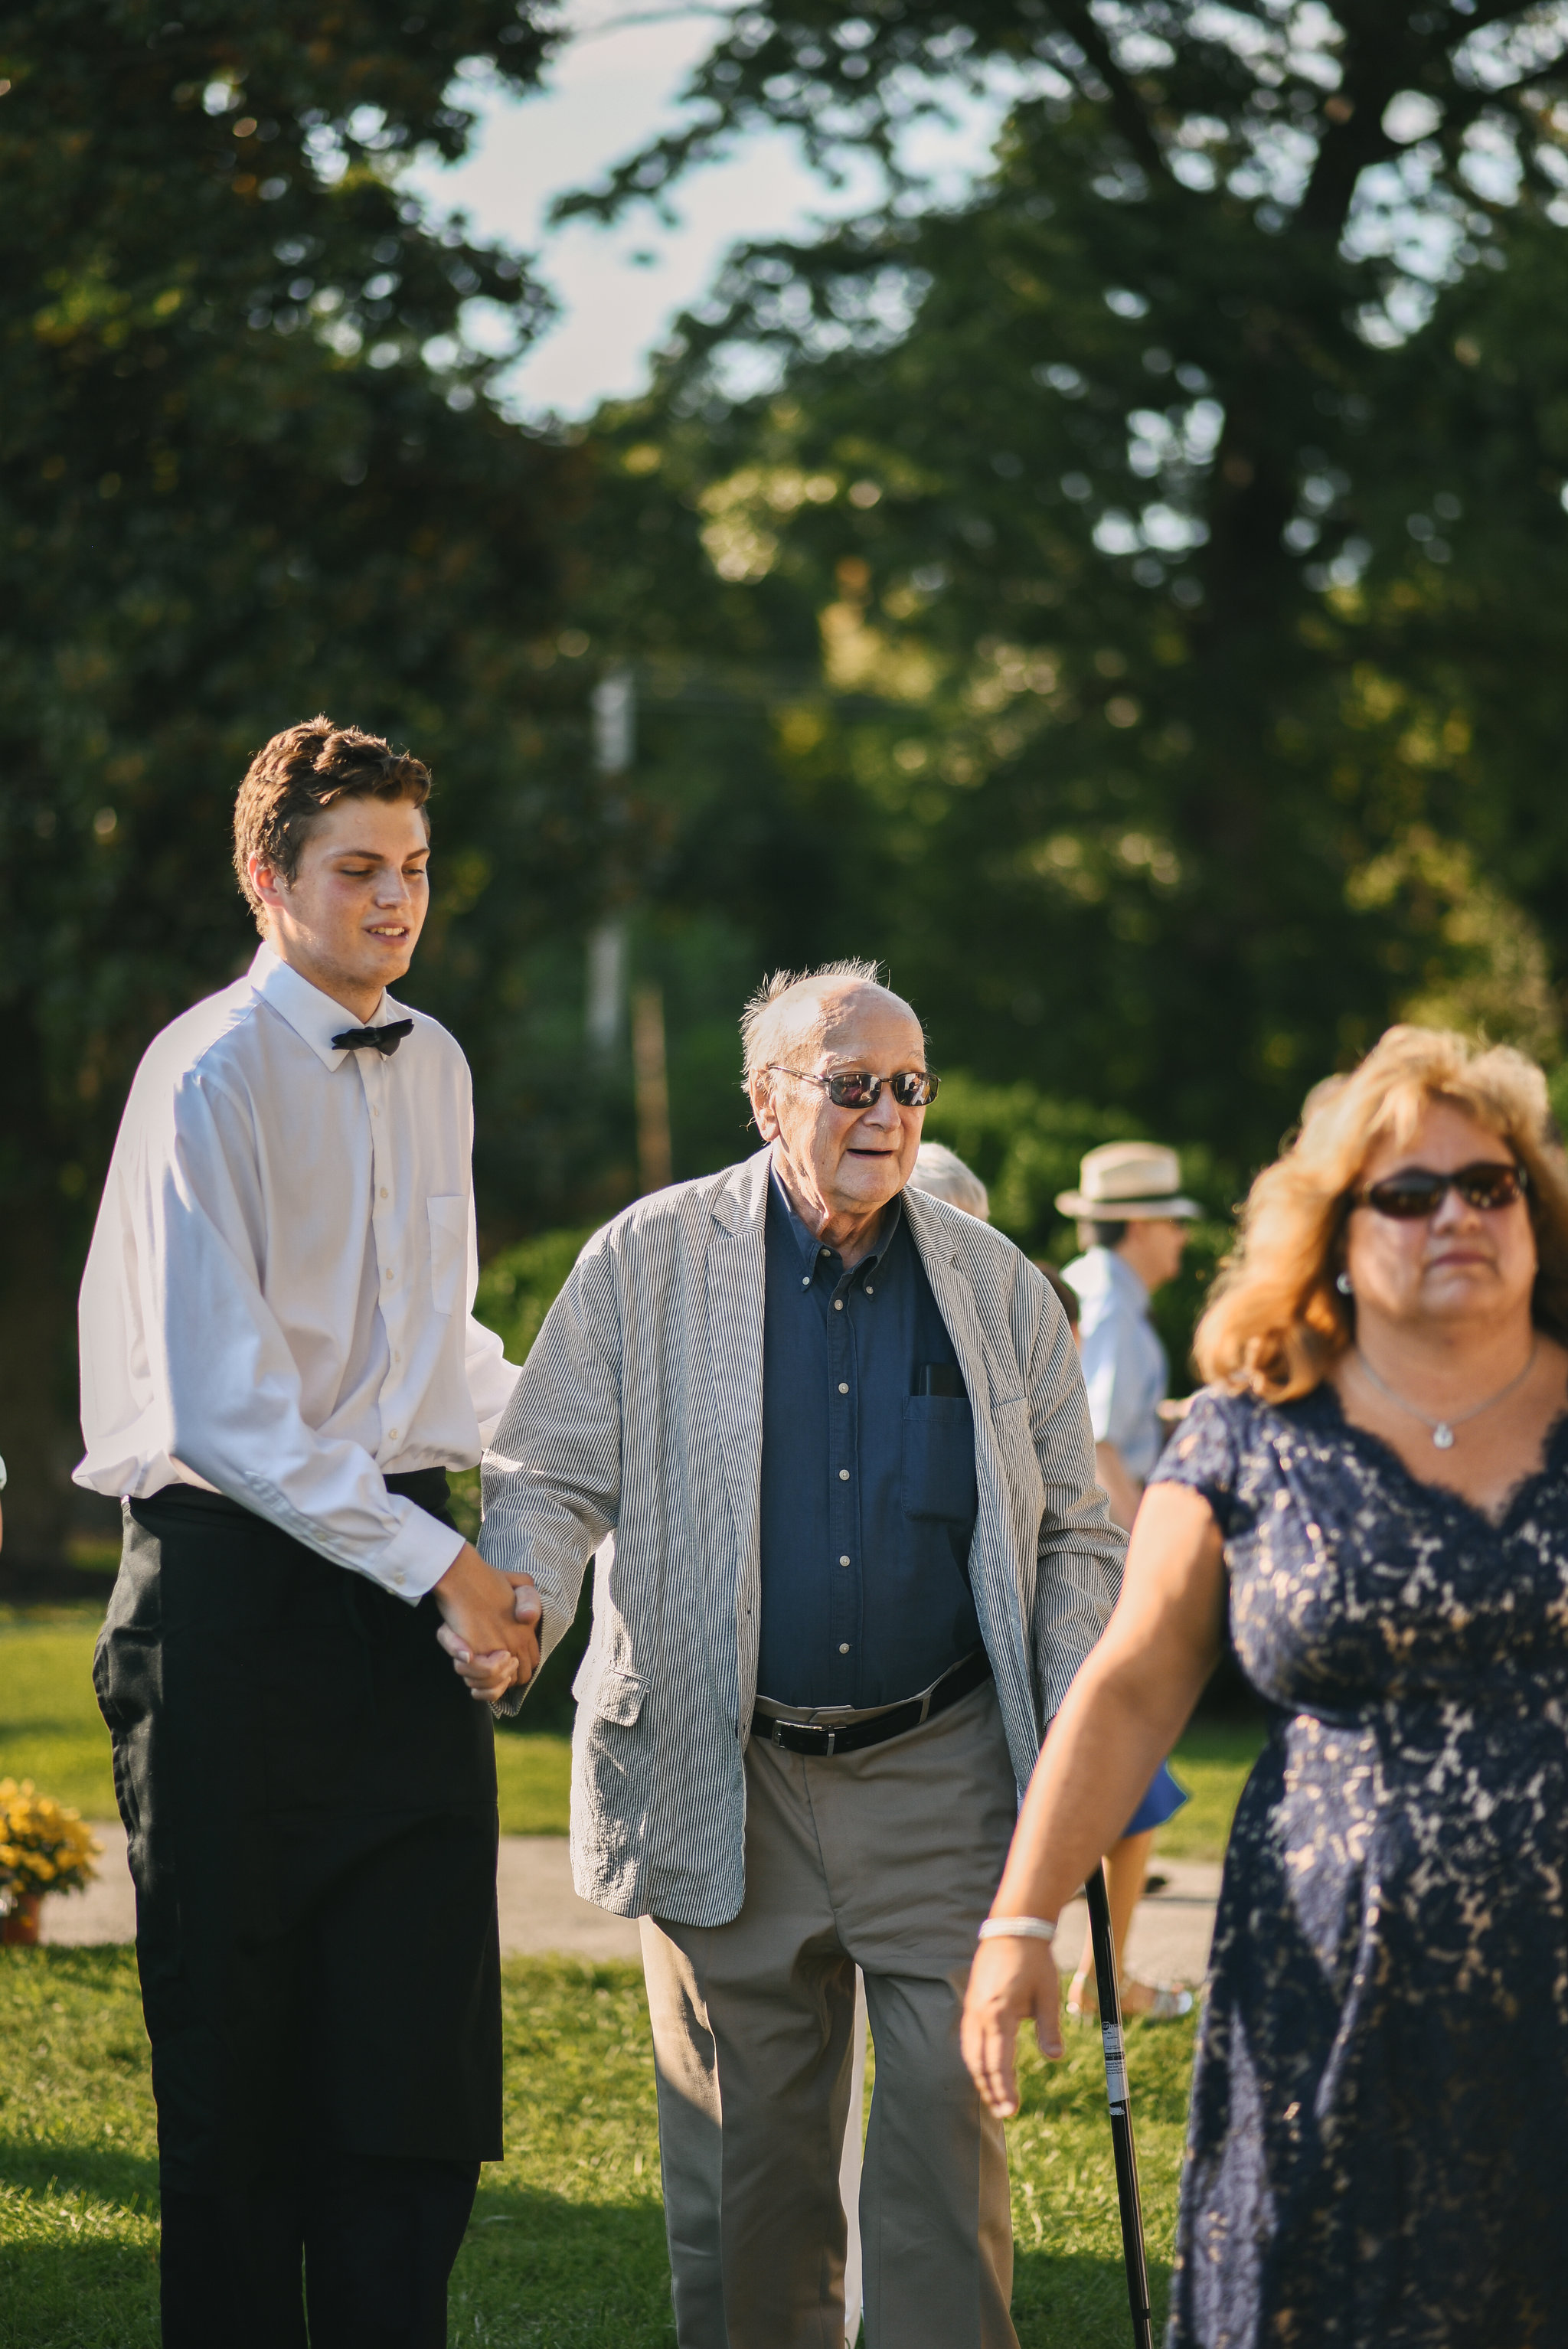 Maryland, Eastern Shore, Baltimore Wedding Photographer, Romantic, Boho, Backyard Wedding, Nature, Family Members Making Their Way to Reception, Guests Walking Outside